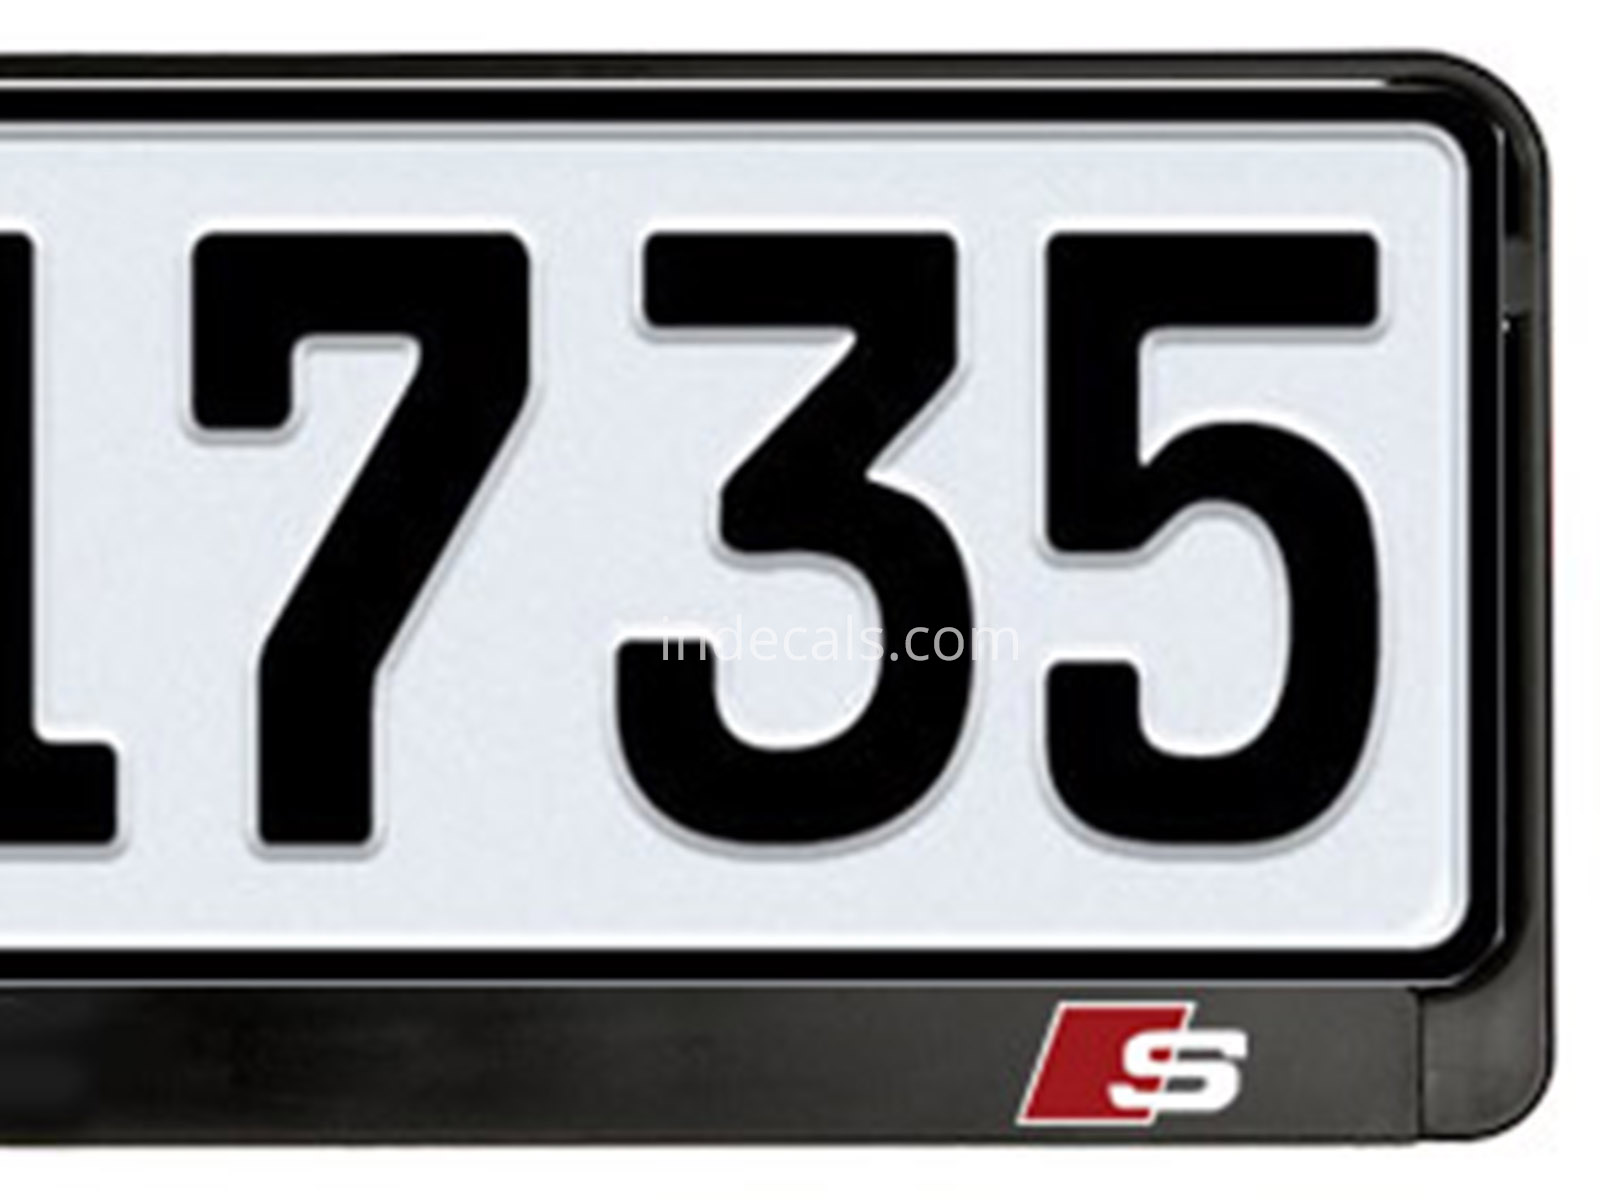 2 x Audi S-Line Stickers for Lincense Plate Frame - White + Red ...